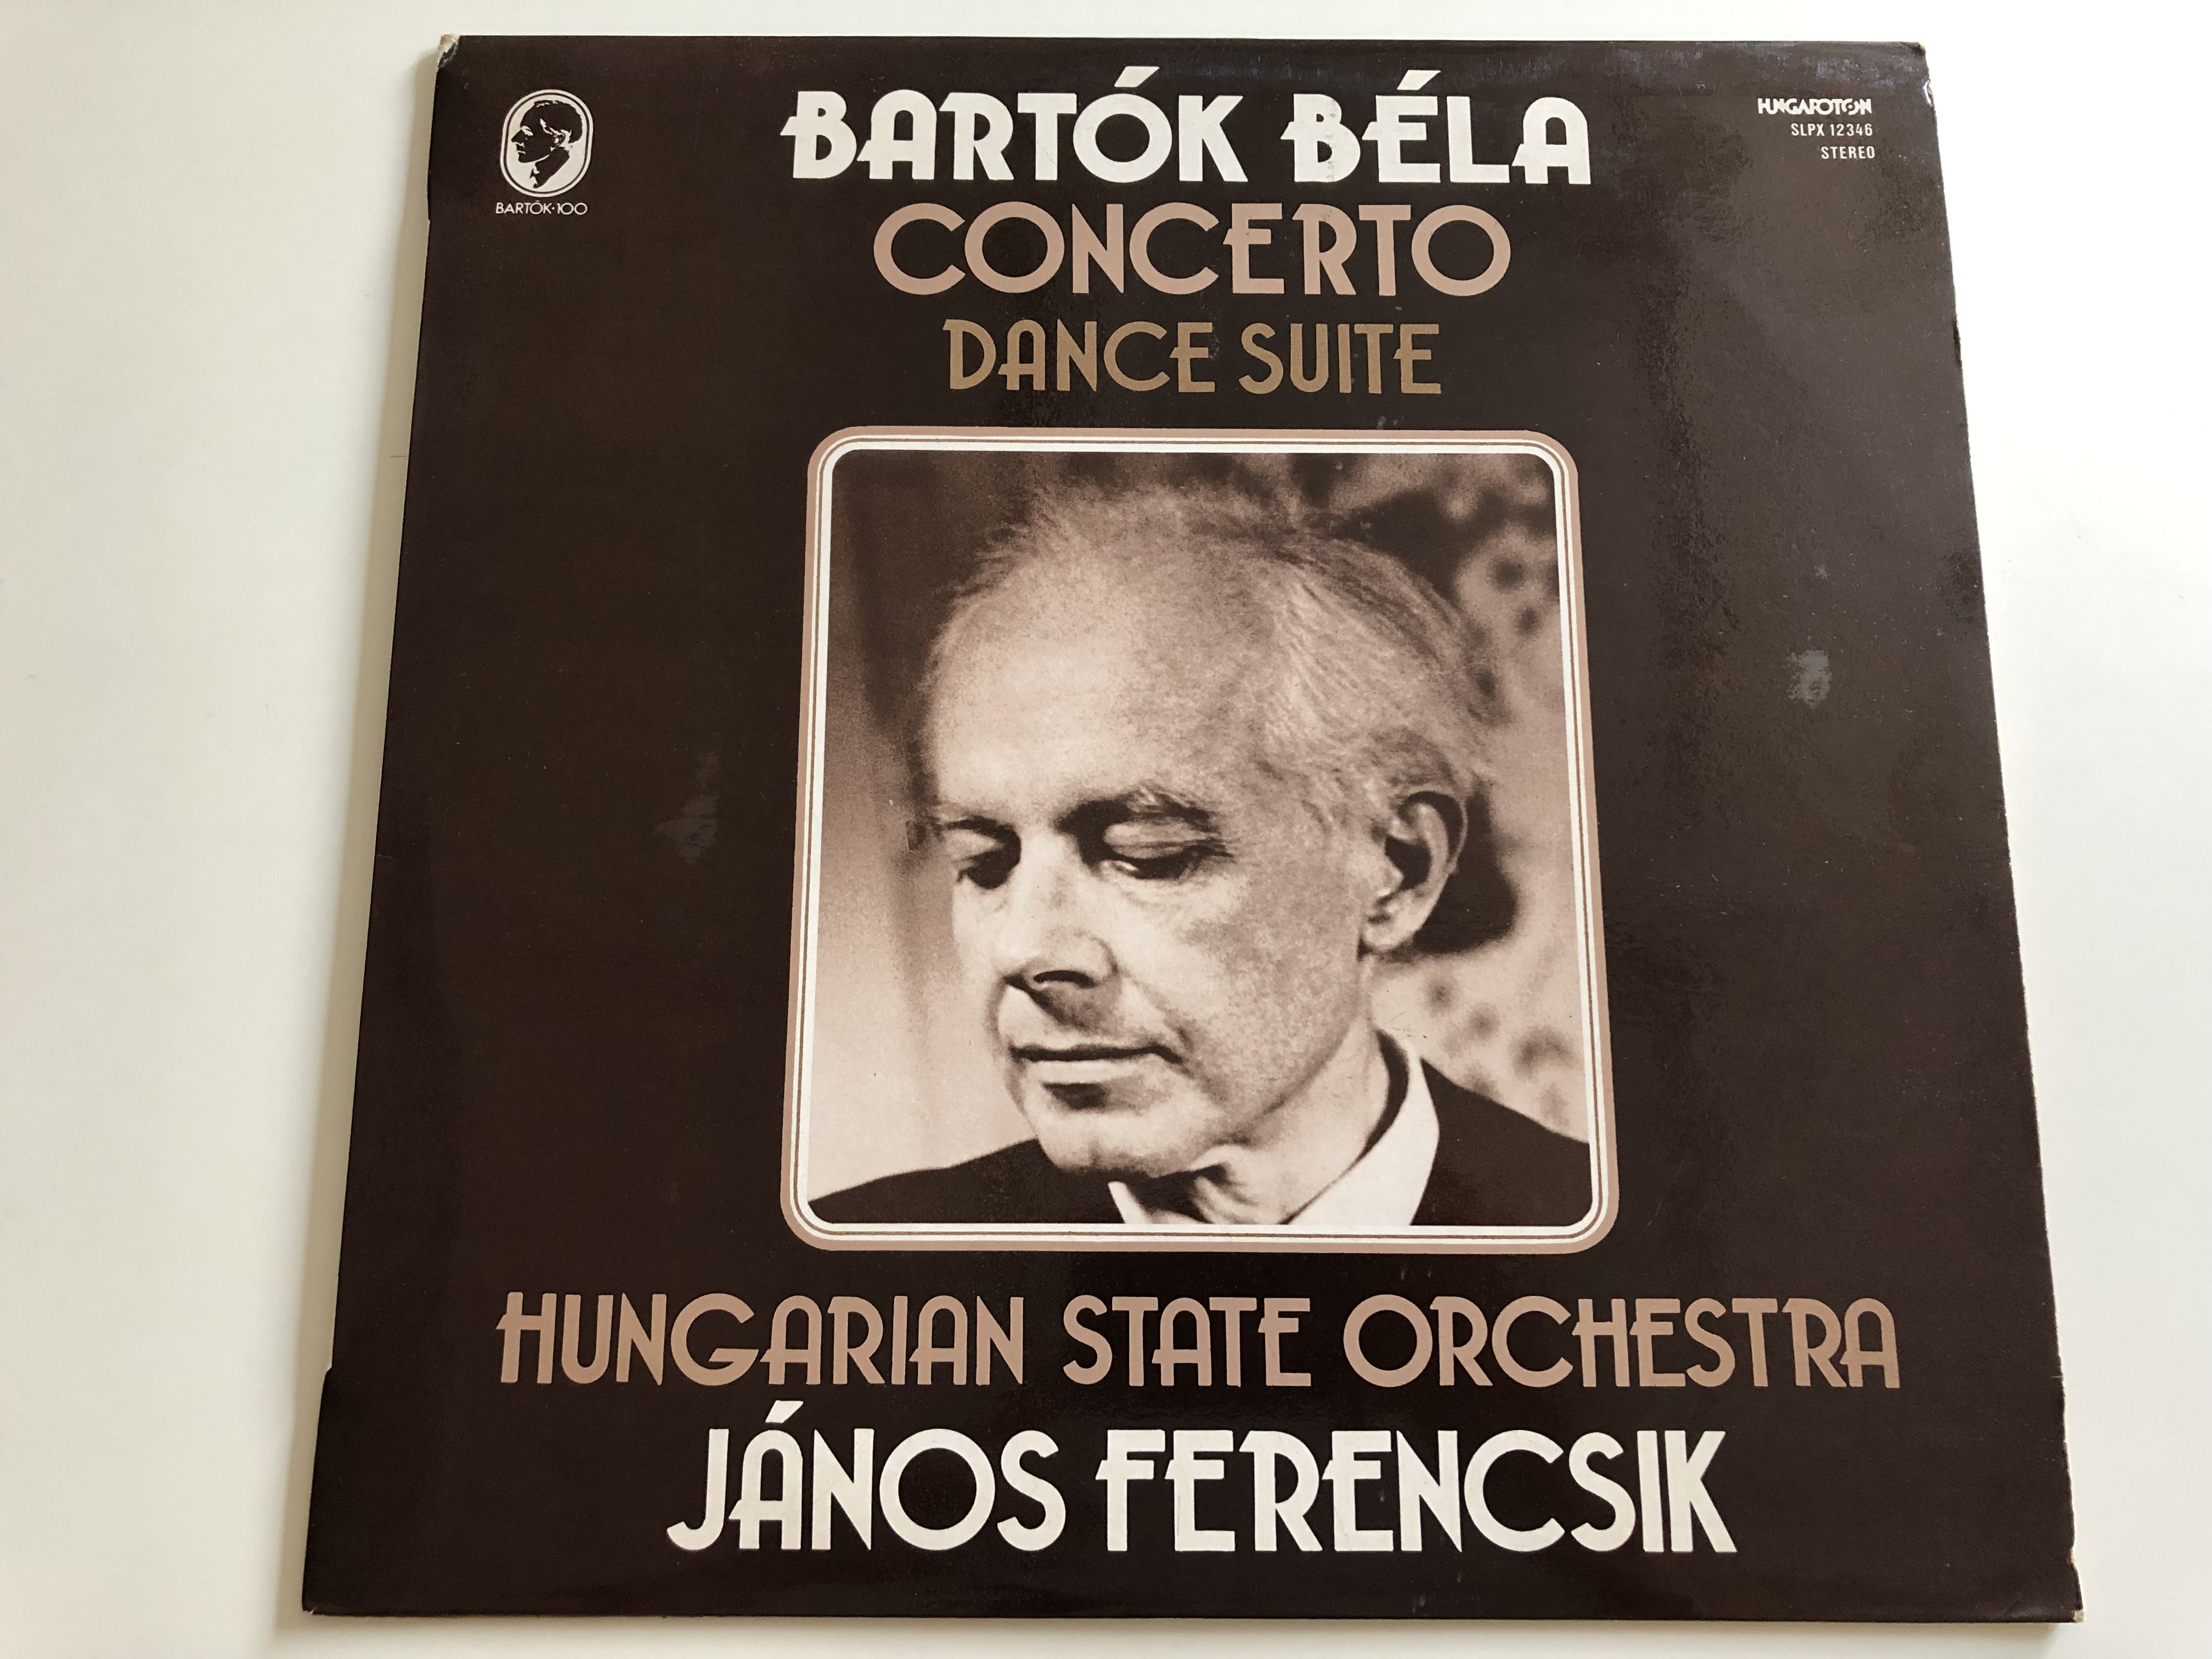 bart-k-b-la-concerto-dance-suite-hungarian-state-orchestra-conducted-j-nos-ferencsik-hungaroton-lp-stereo-slpx-12346-1-.jpg